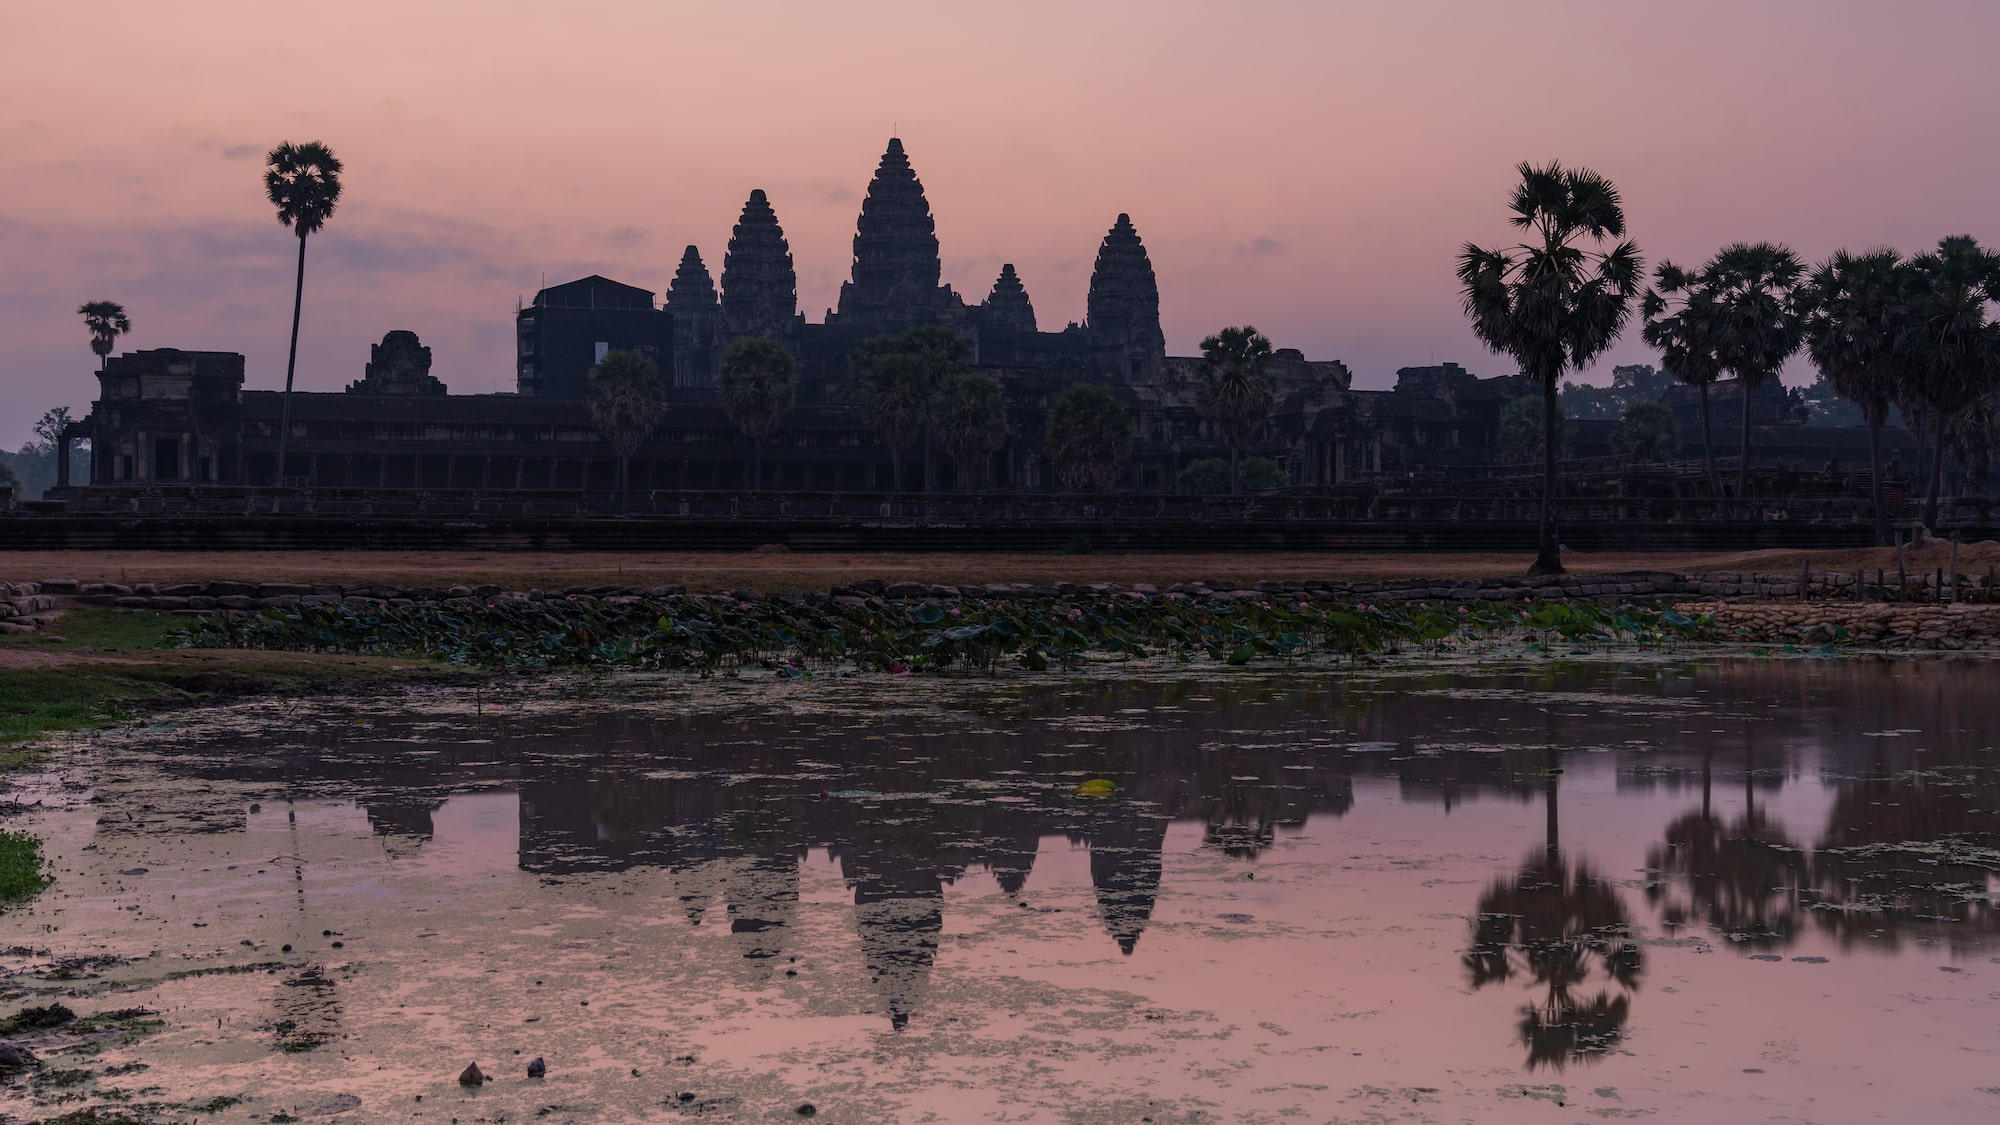 Temples and their waters reflection at sunrise in Angkor Wat